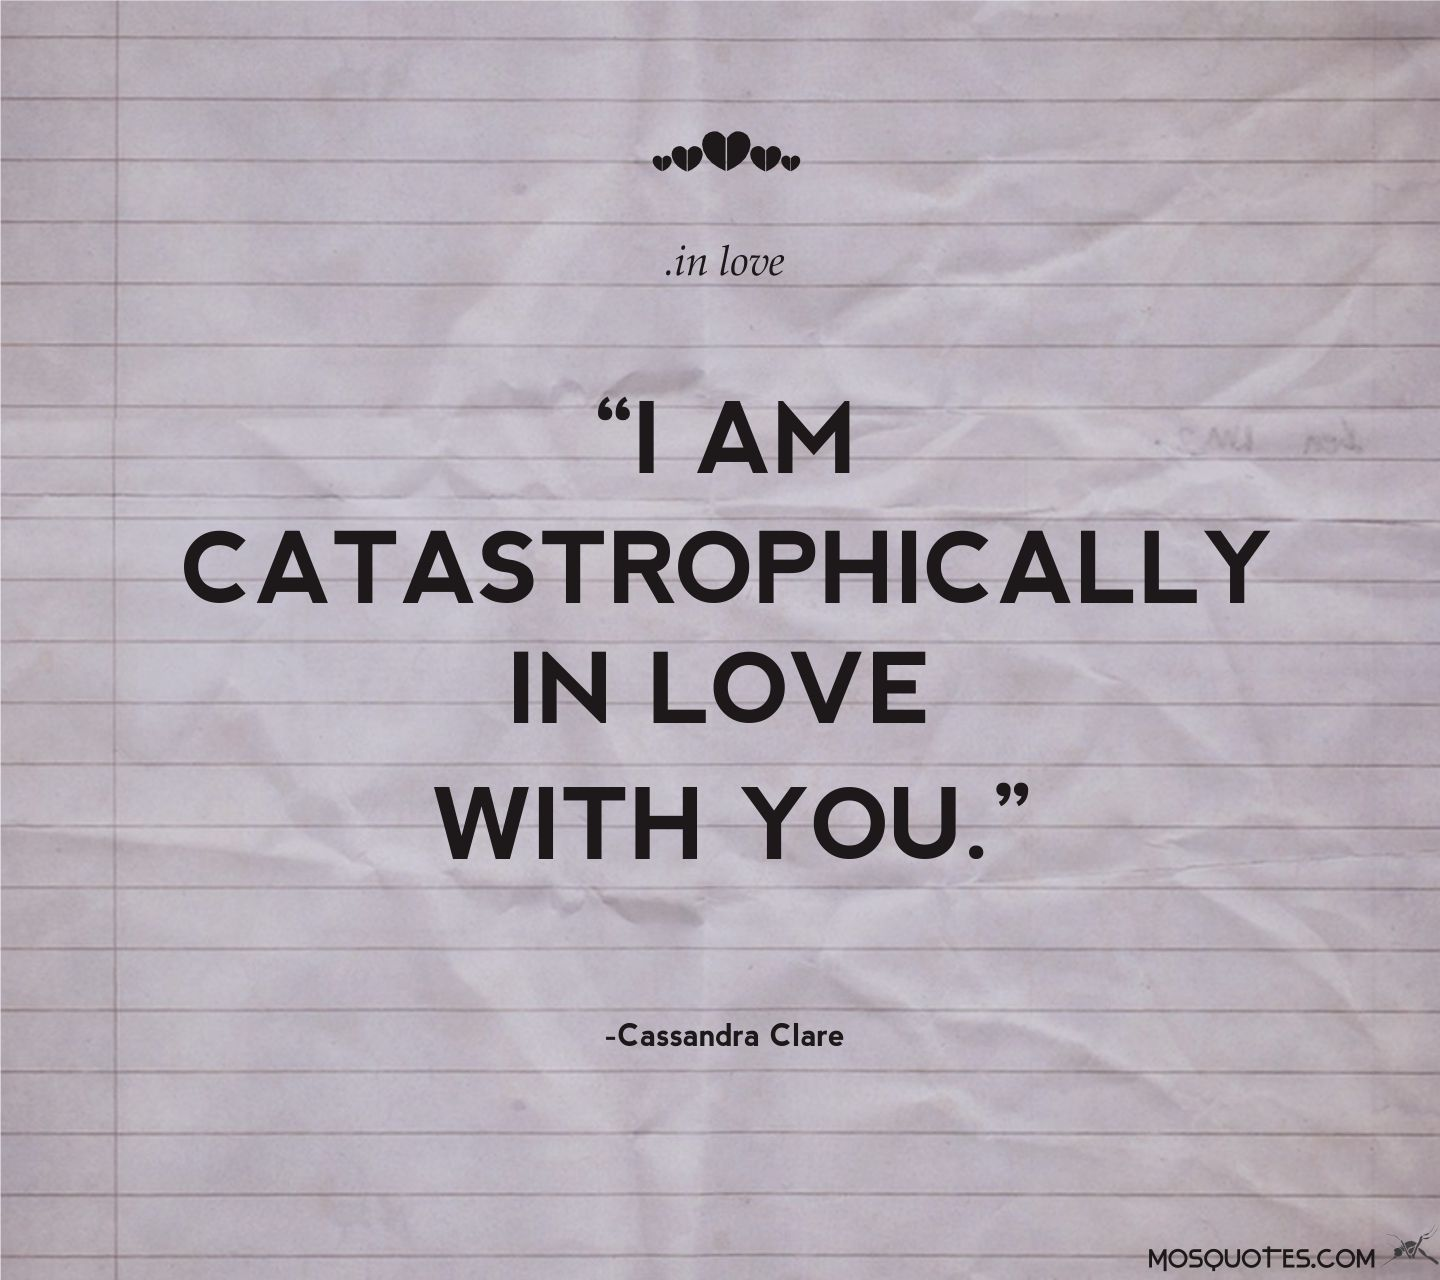 In Love Quotes: Cassandra Clare Quotes About Love. QuotesGram